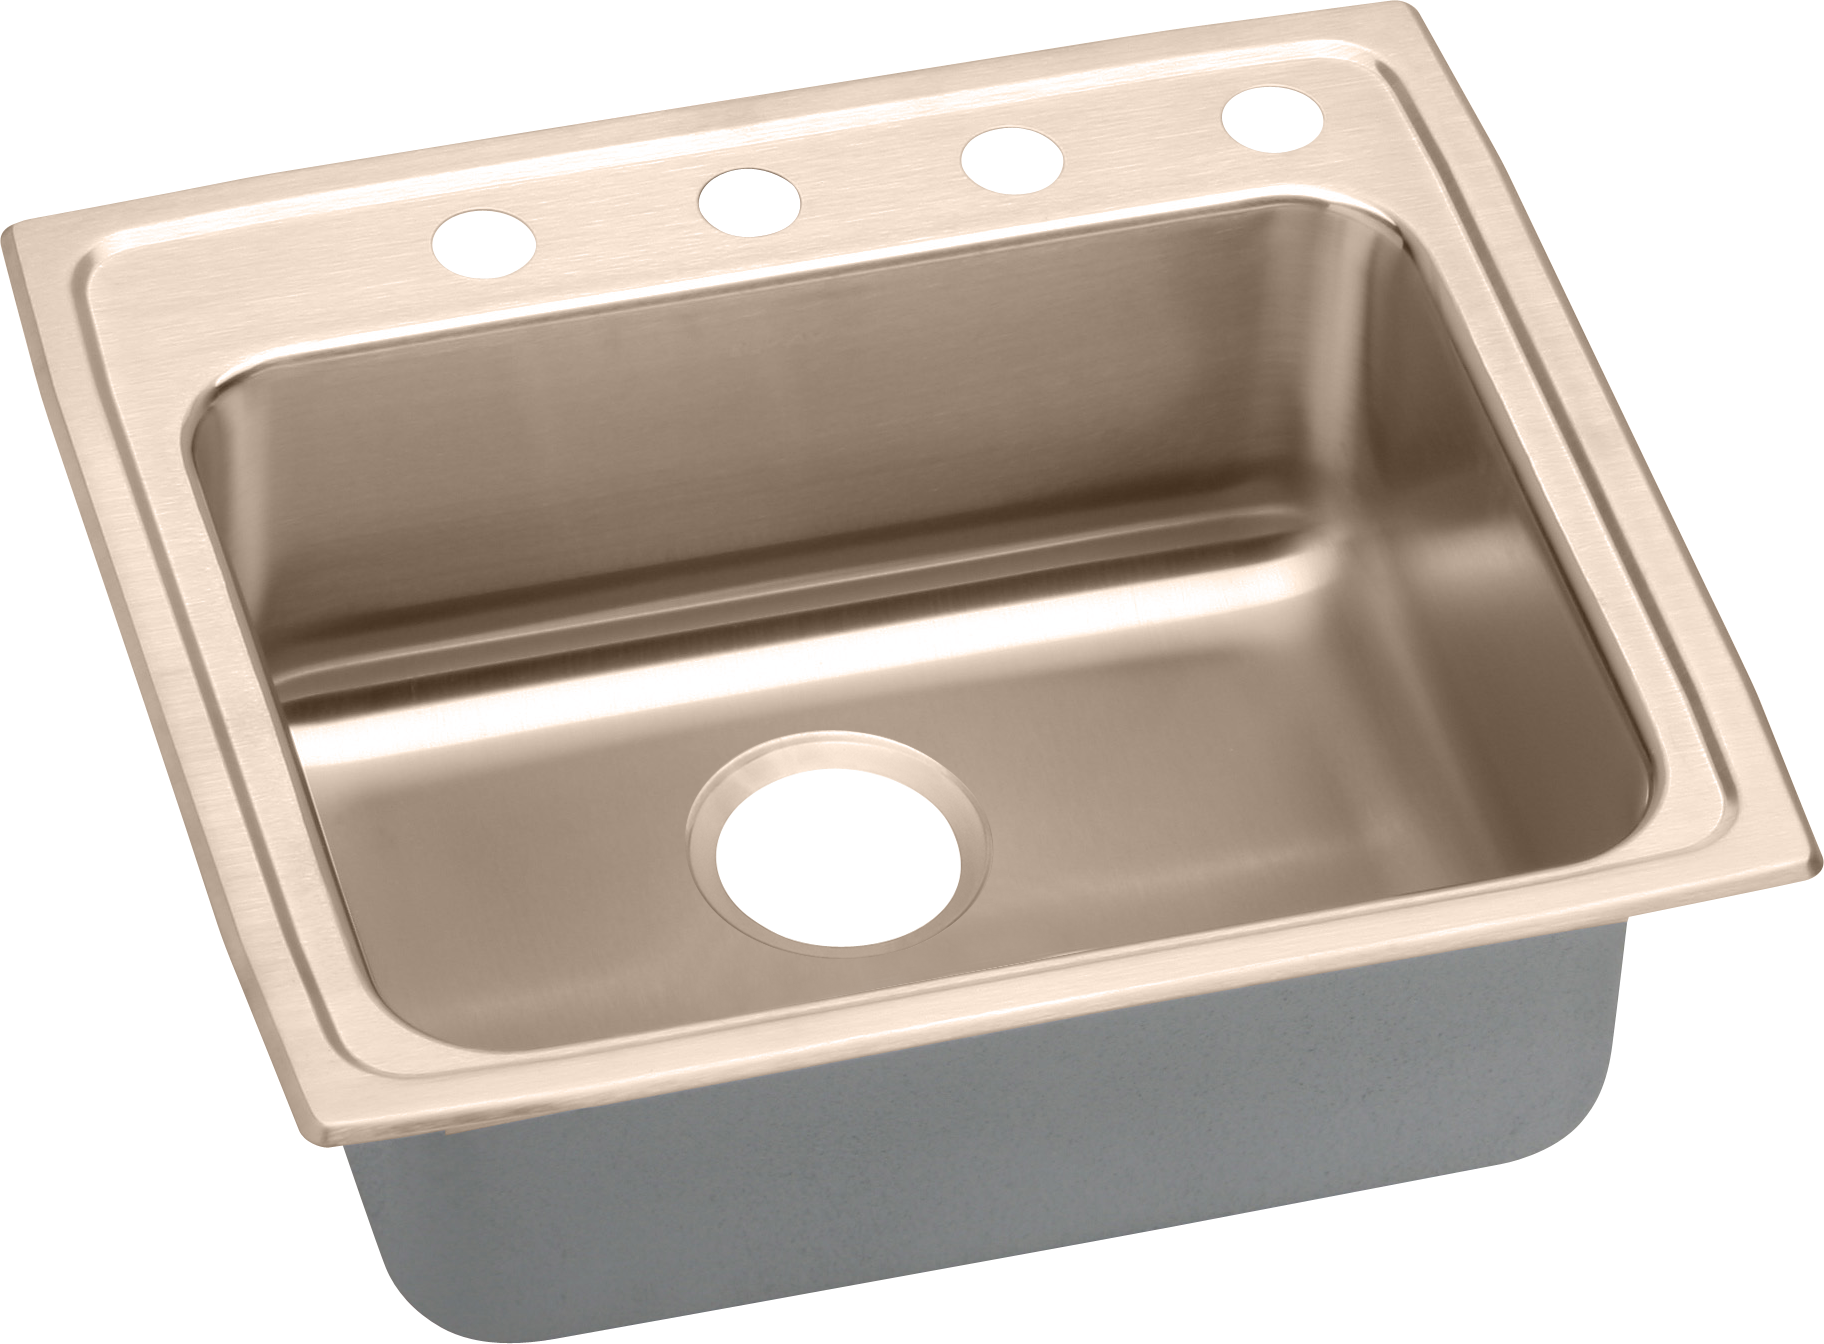 Elkay Lrad221945mr2cu 22 Inch Medical Grade Single Bowl Sink With Sound Dampening Antimicrobial Copper Repairable Finish And Ada Compliant 2 Faucet Holes Off Center Right